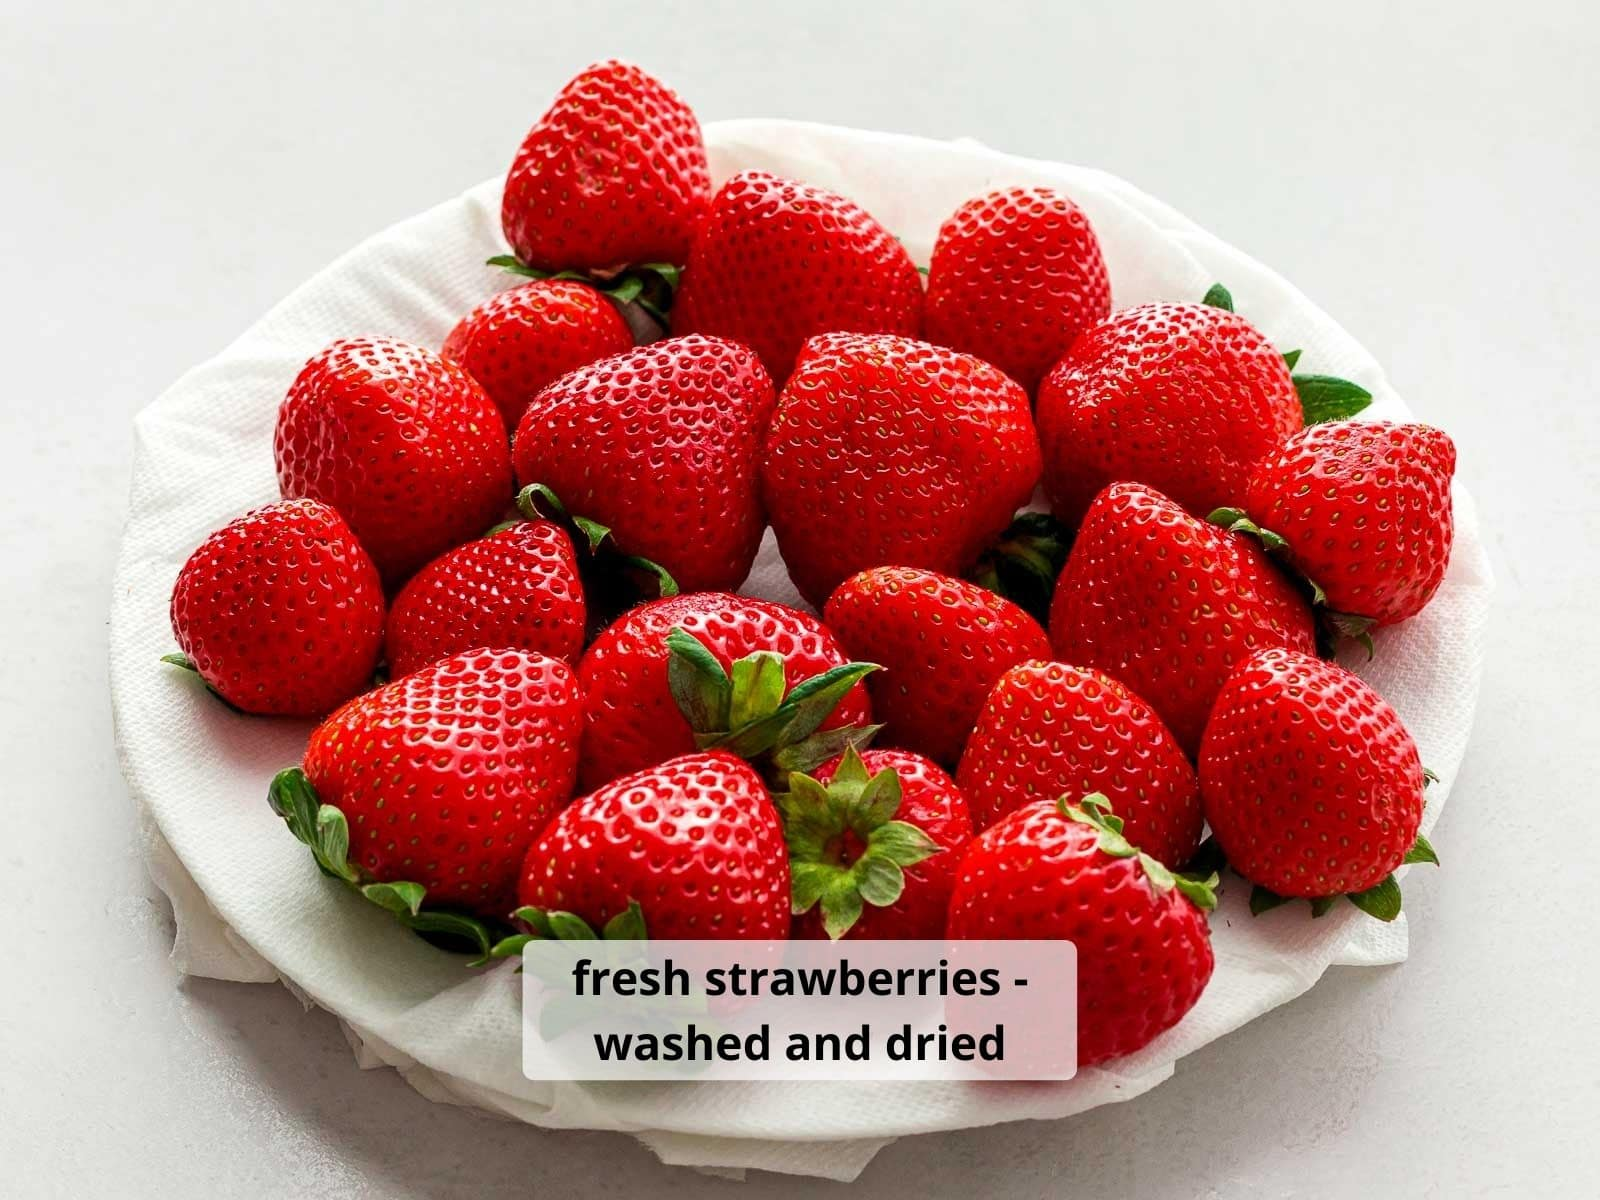 close up of red strawberries washed and dried on a white plate